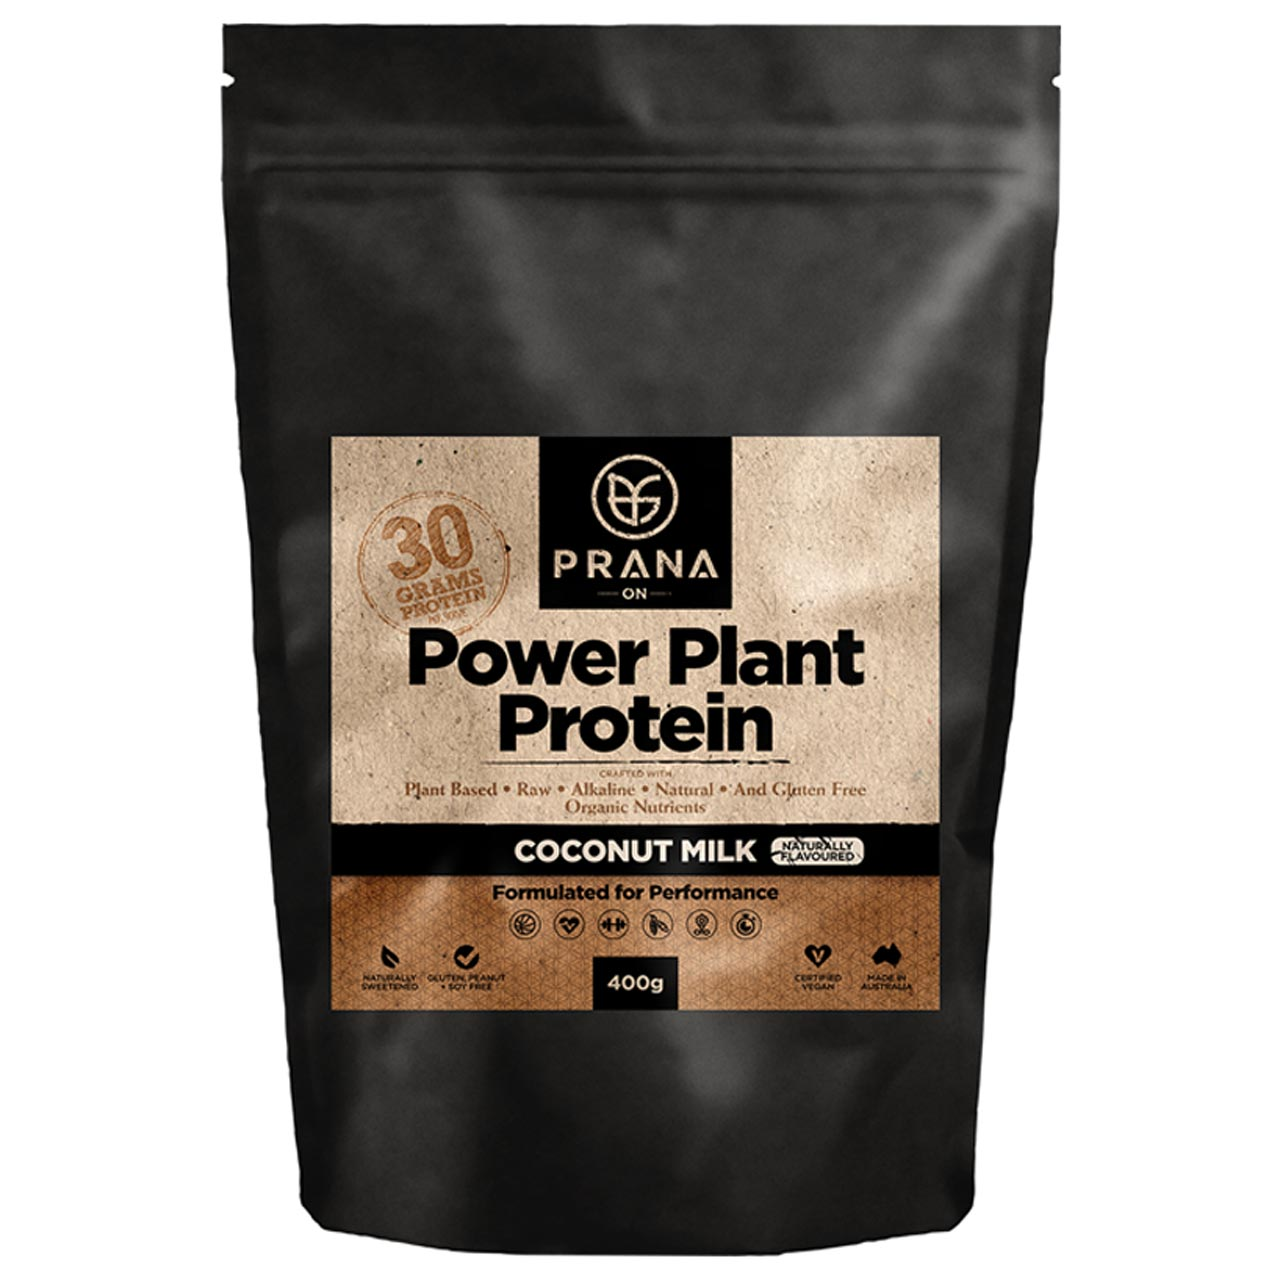 Prana Power Plant Protein -Coconut Milk